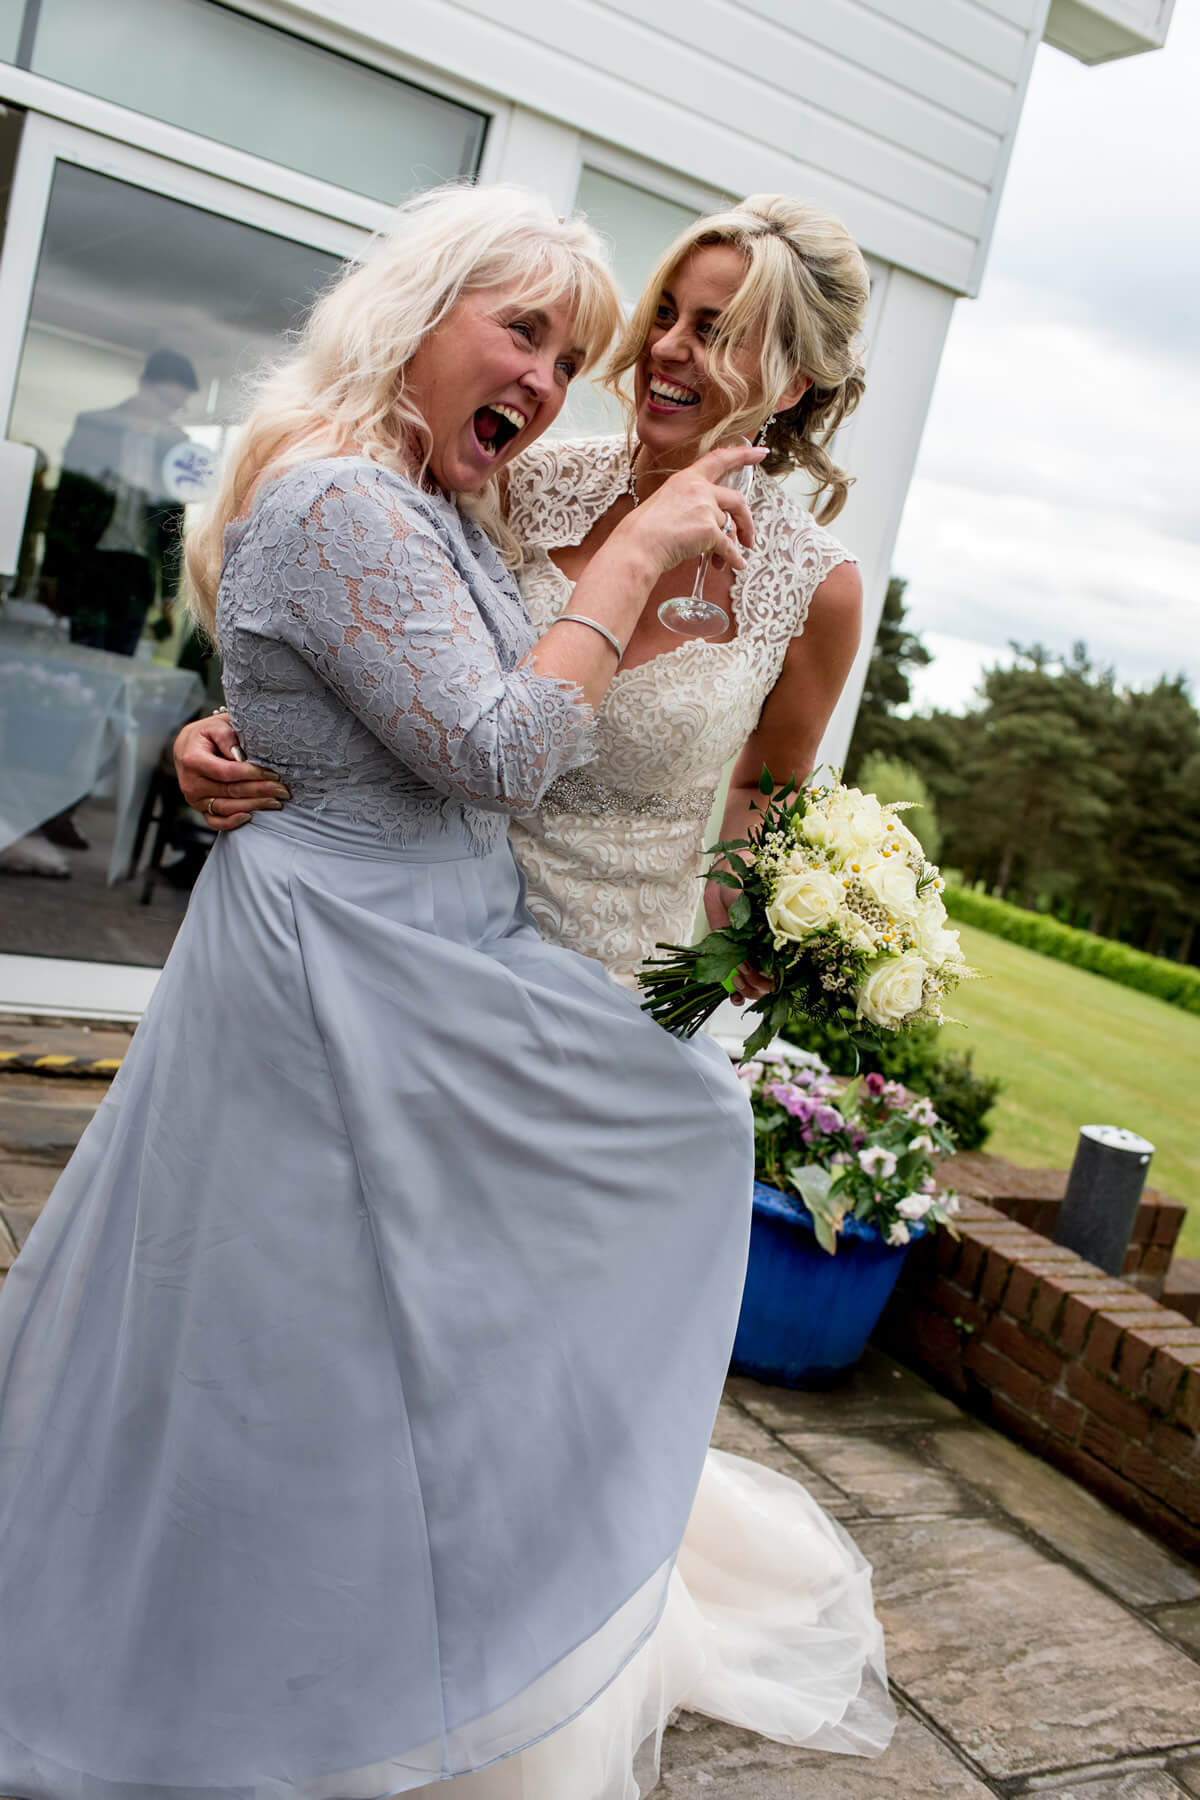 carine bea photography, london wedding photography, london wedding photographer, documentary wedding photographer, documentary wedding photography, natural wedding photos, photojournalist, wedding reportage, alternative wedding photographer, essex wedding photographer, essex wedding photography, essex wedding, Stoke by Nayland Hotel wedding, Mori Lee dress, Sara Scott flowers, Stoke by Nayland Hotel wedding photographer